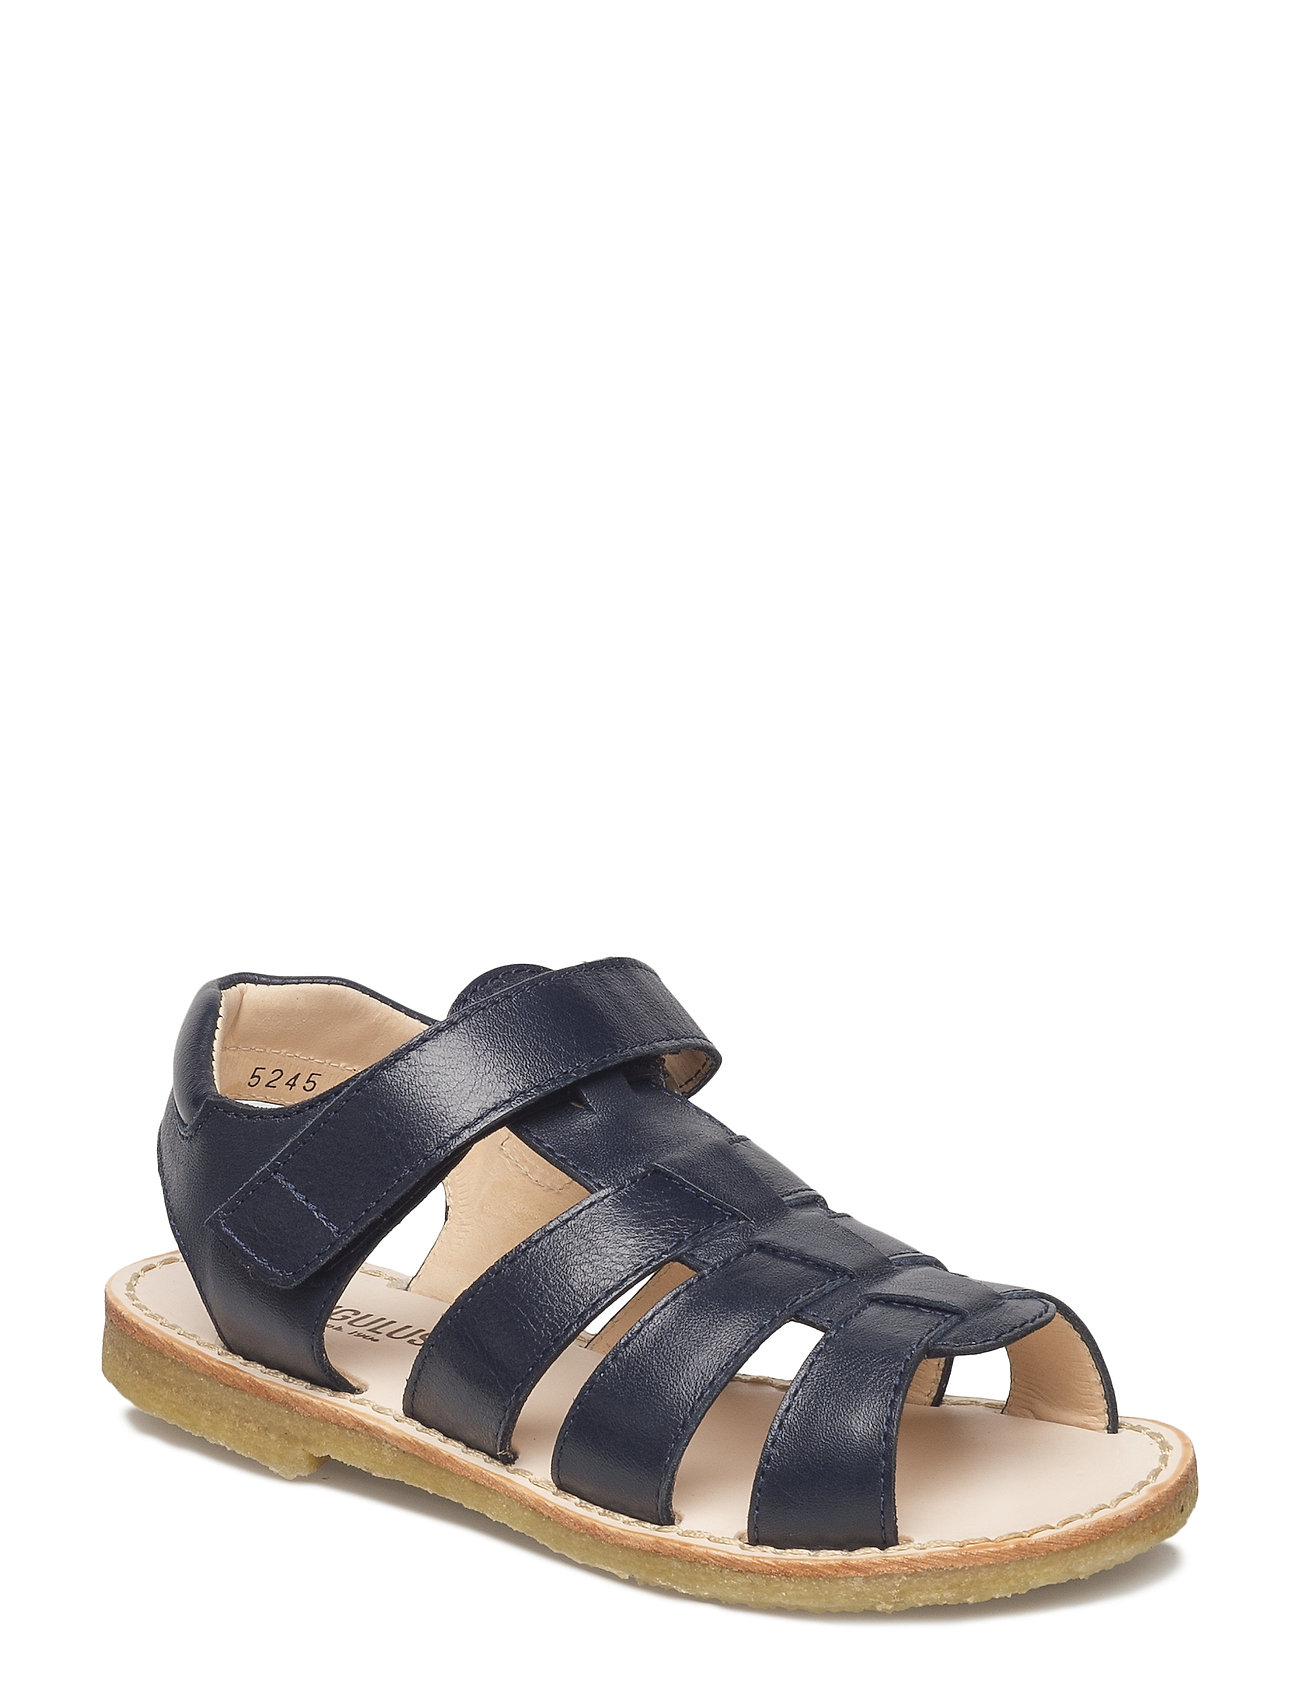 Image of Sandals - Flat - Open Toe - Op Sandaler Blå ANGULUS (3250583843)